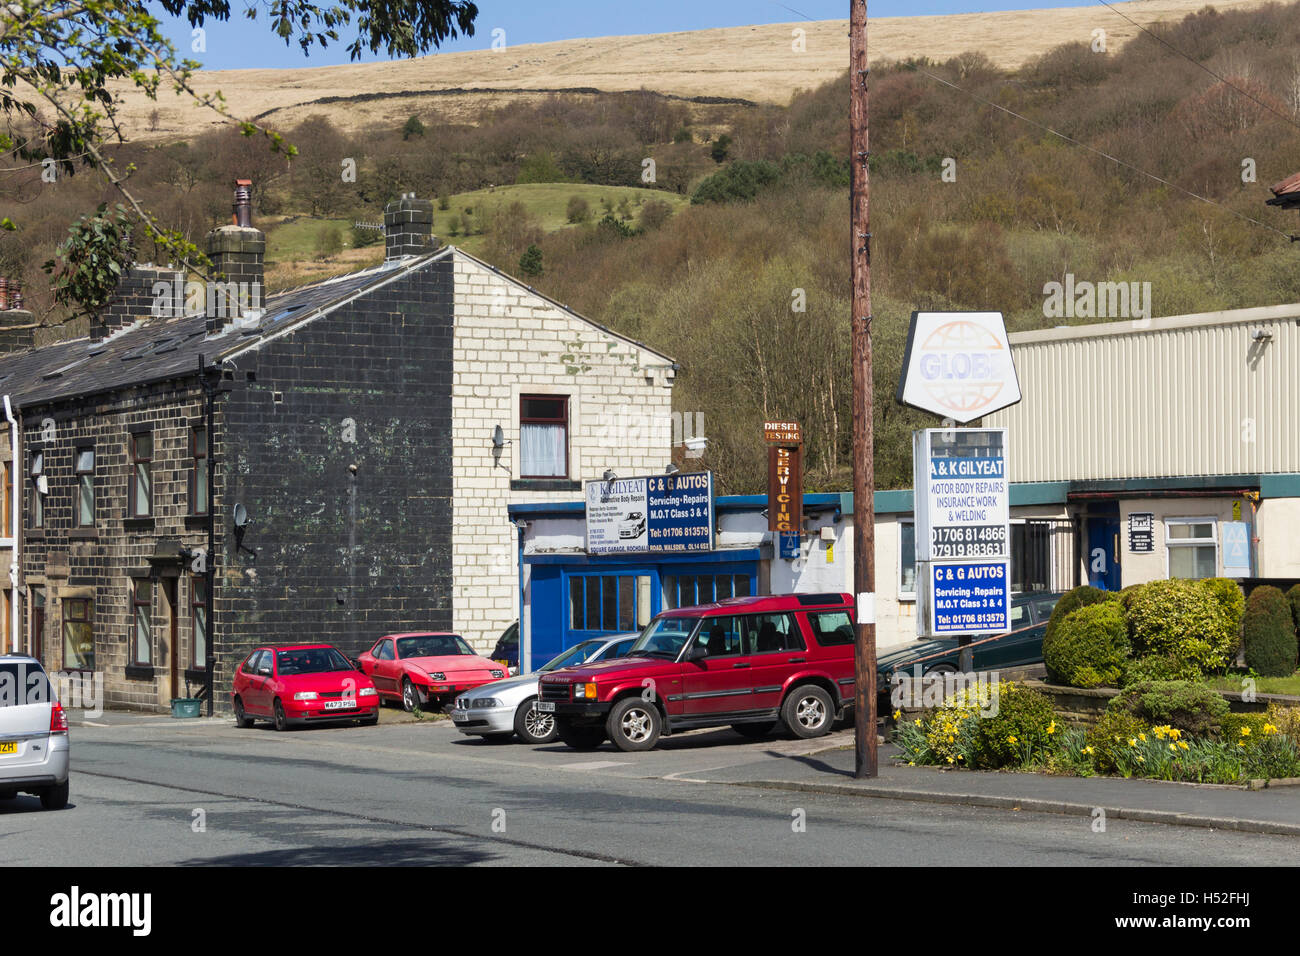 C and G Autos Walsden, Lancashire. A small, independent car repairs and MOT business serving the village of Walsden. - Stock Image